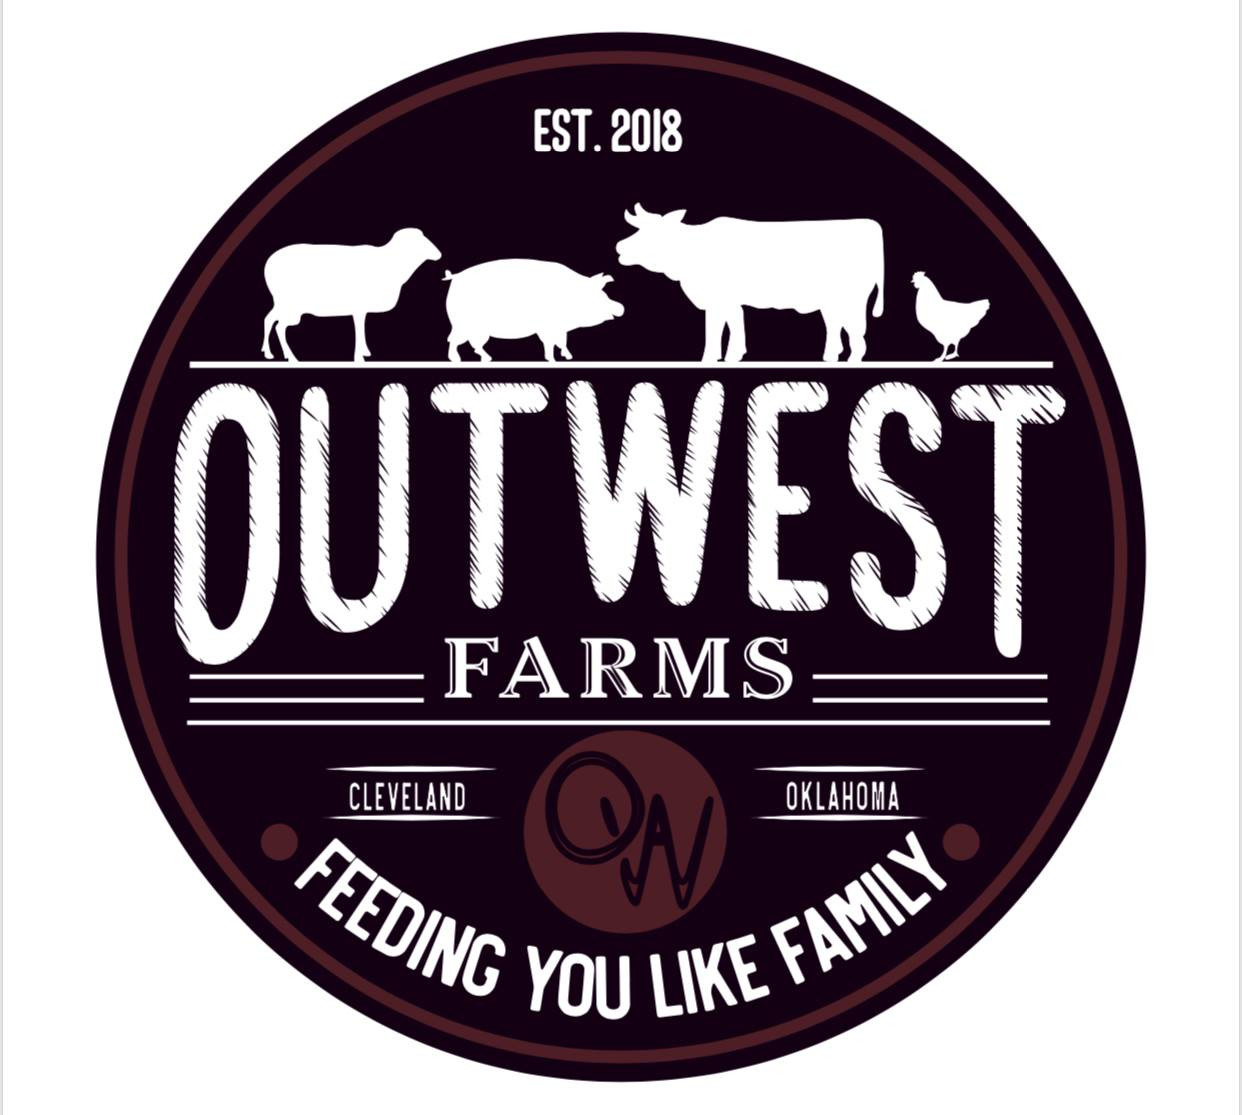 Outwest Farms Logo